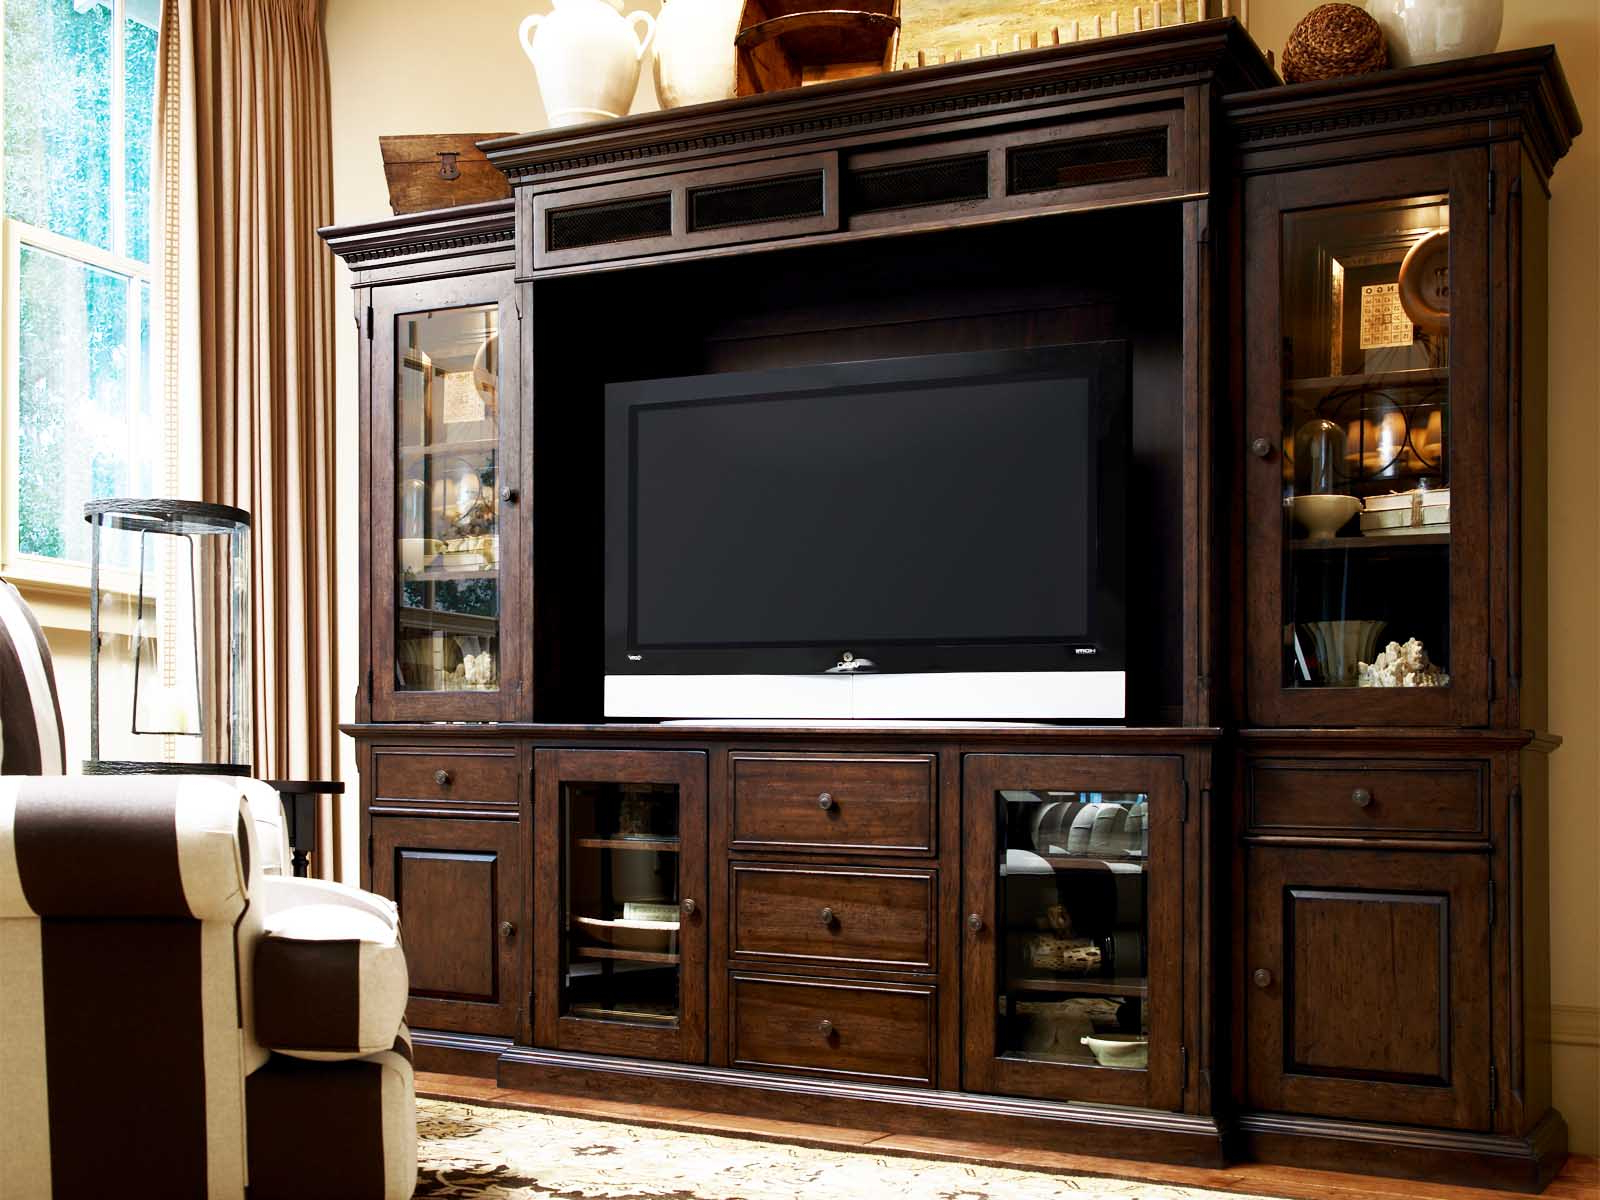 Widely Used Lcd Tv Cabinet Designs Photos Stand Ideas For Small Spaces Within Tv Cabinets With Glass Doors (View 16 of 20)